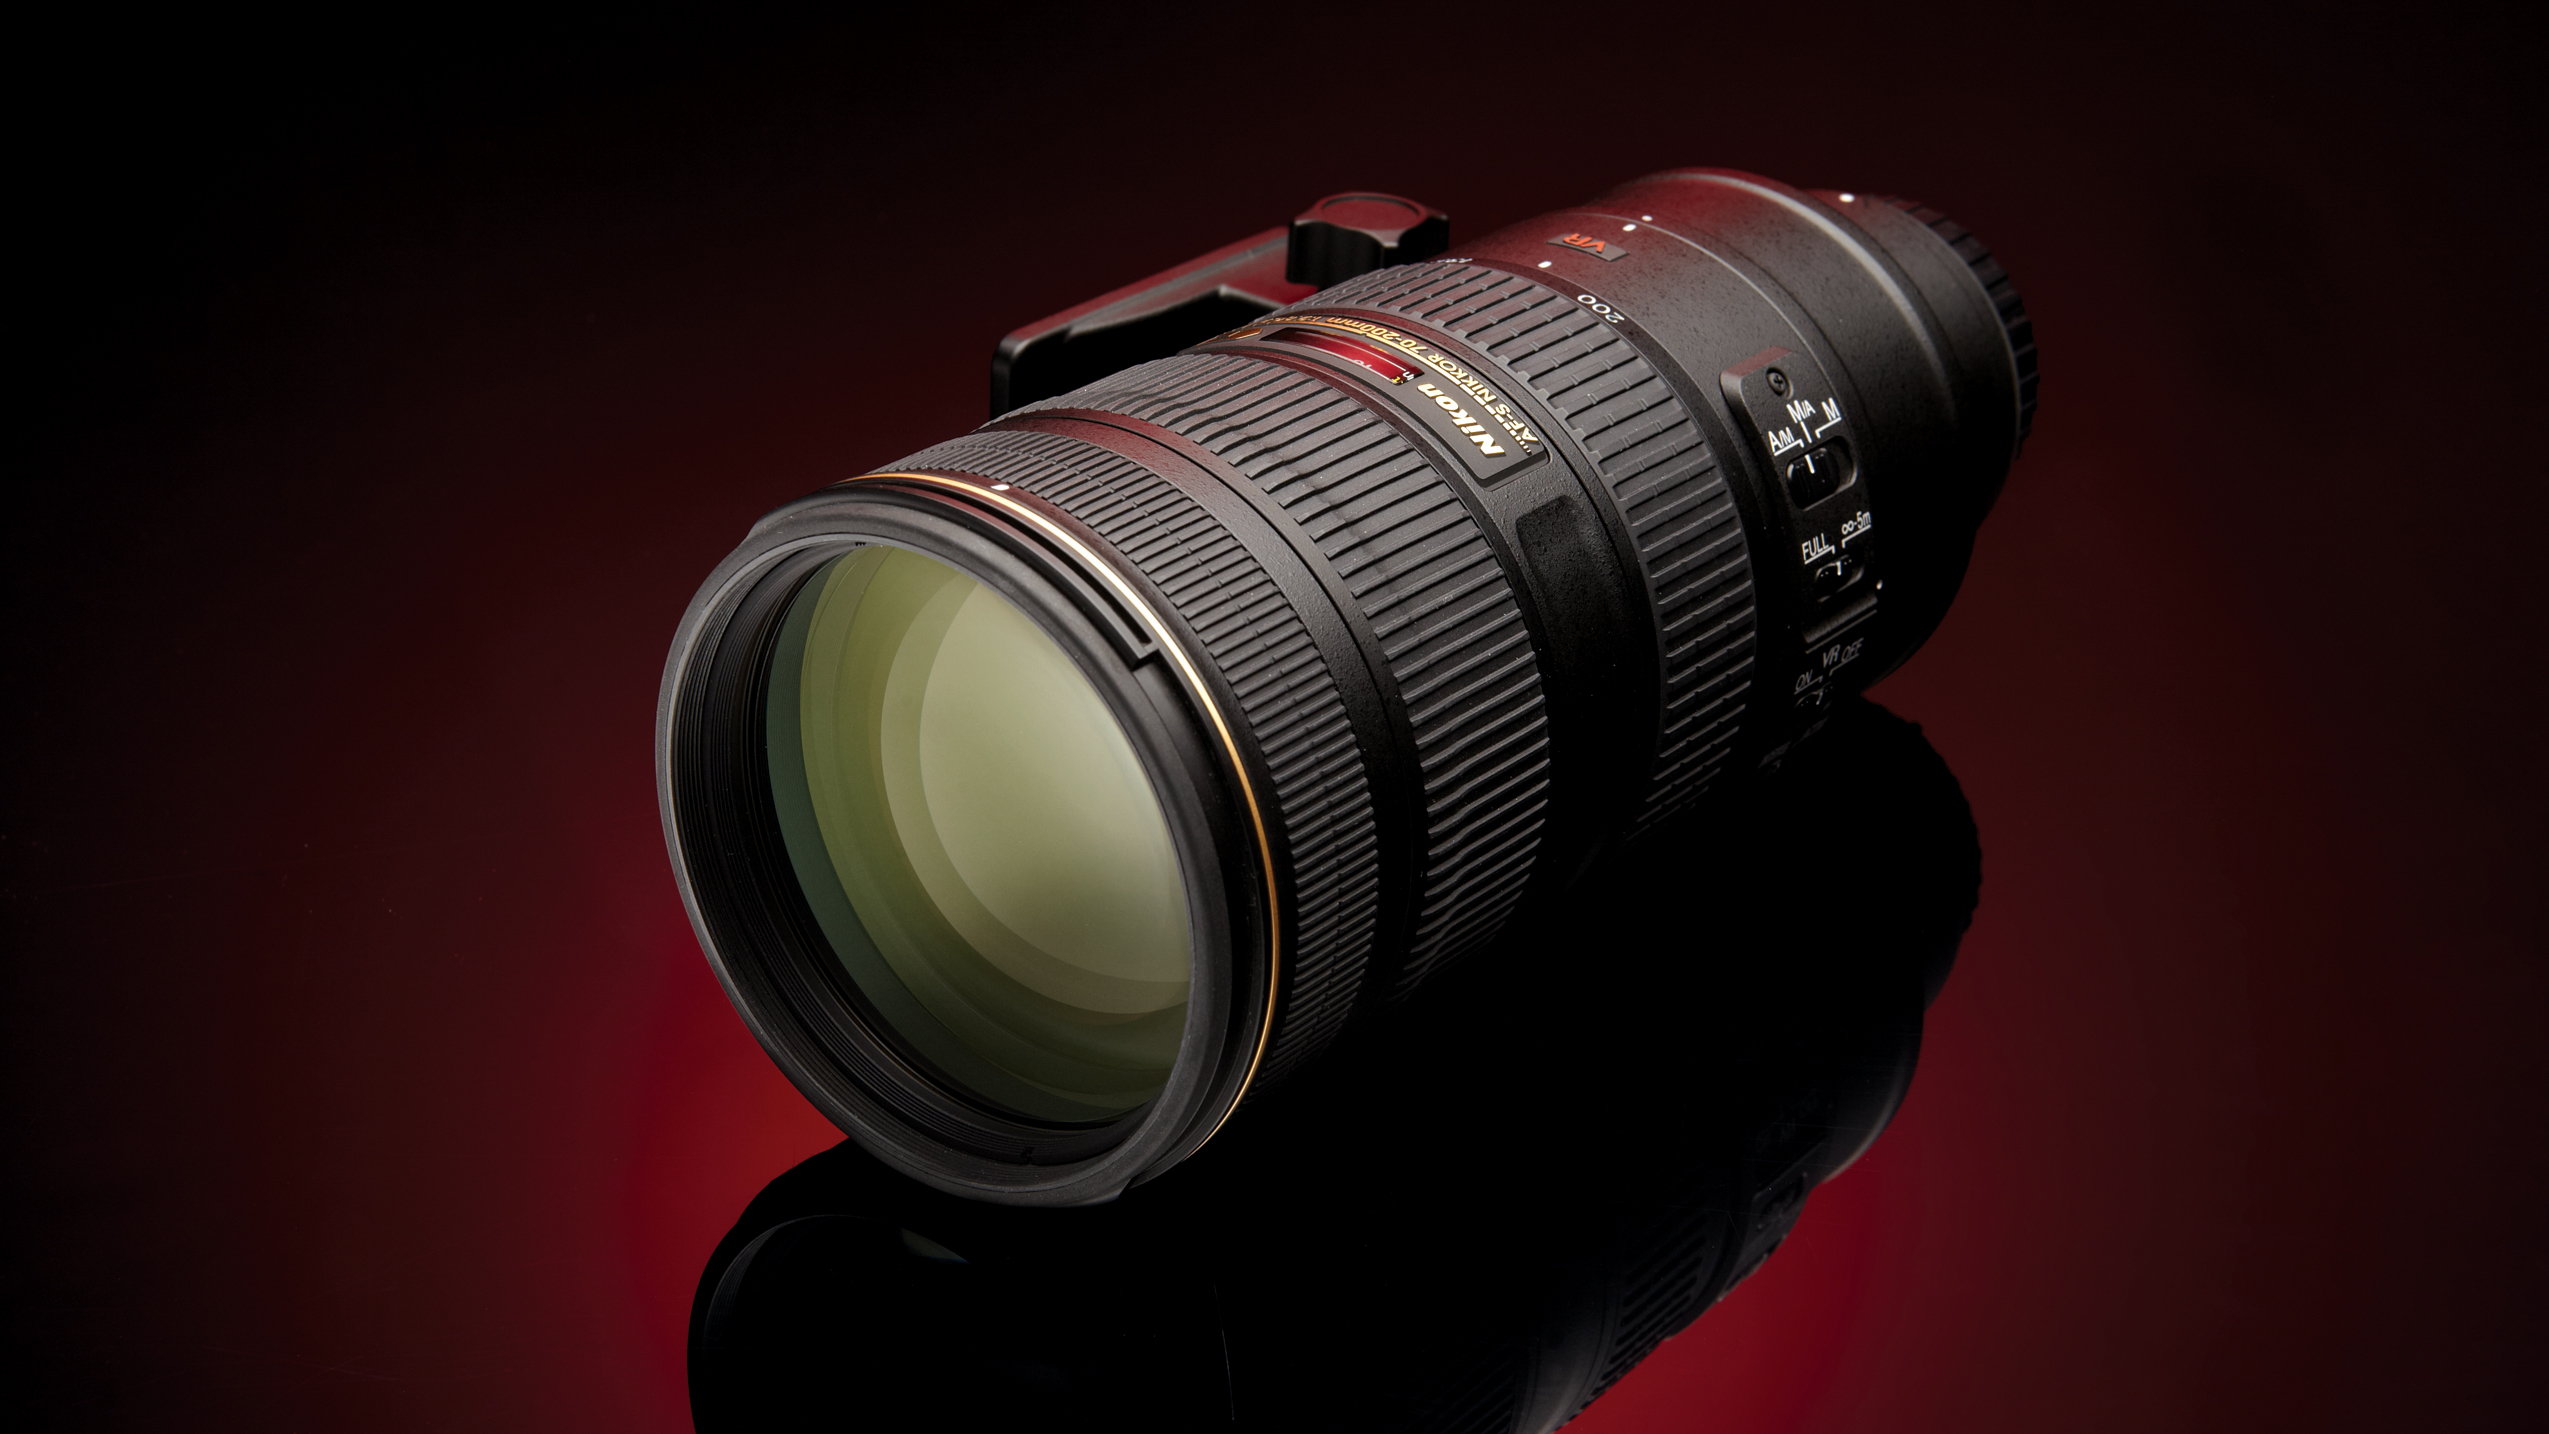 The best telephoto lenses for canon and nikon dslrs in